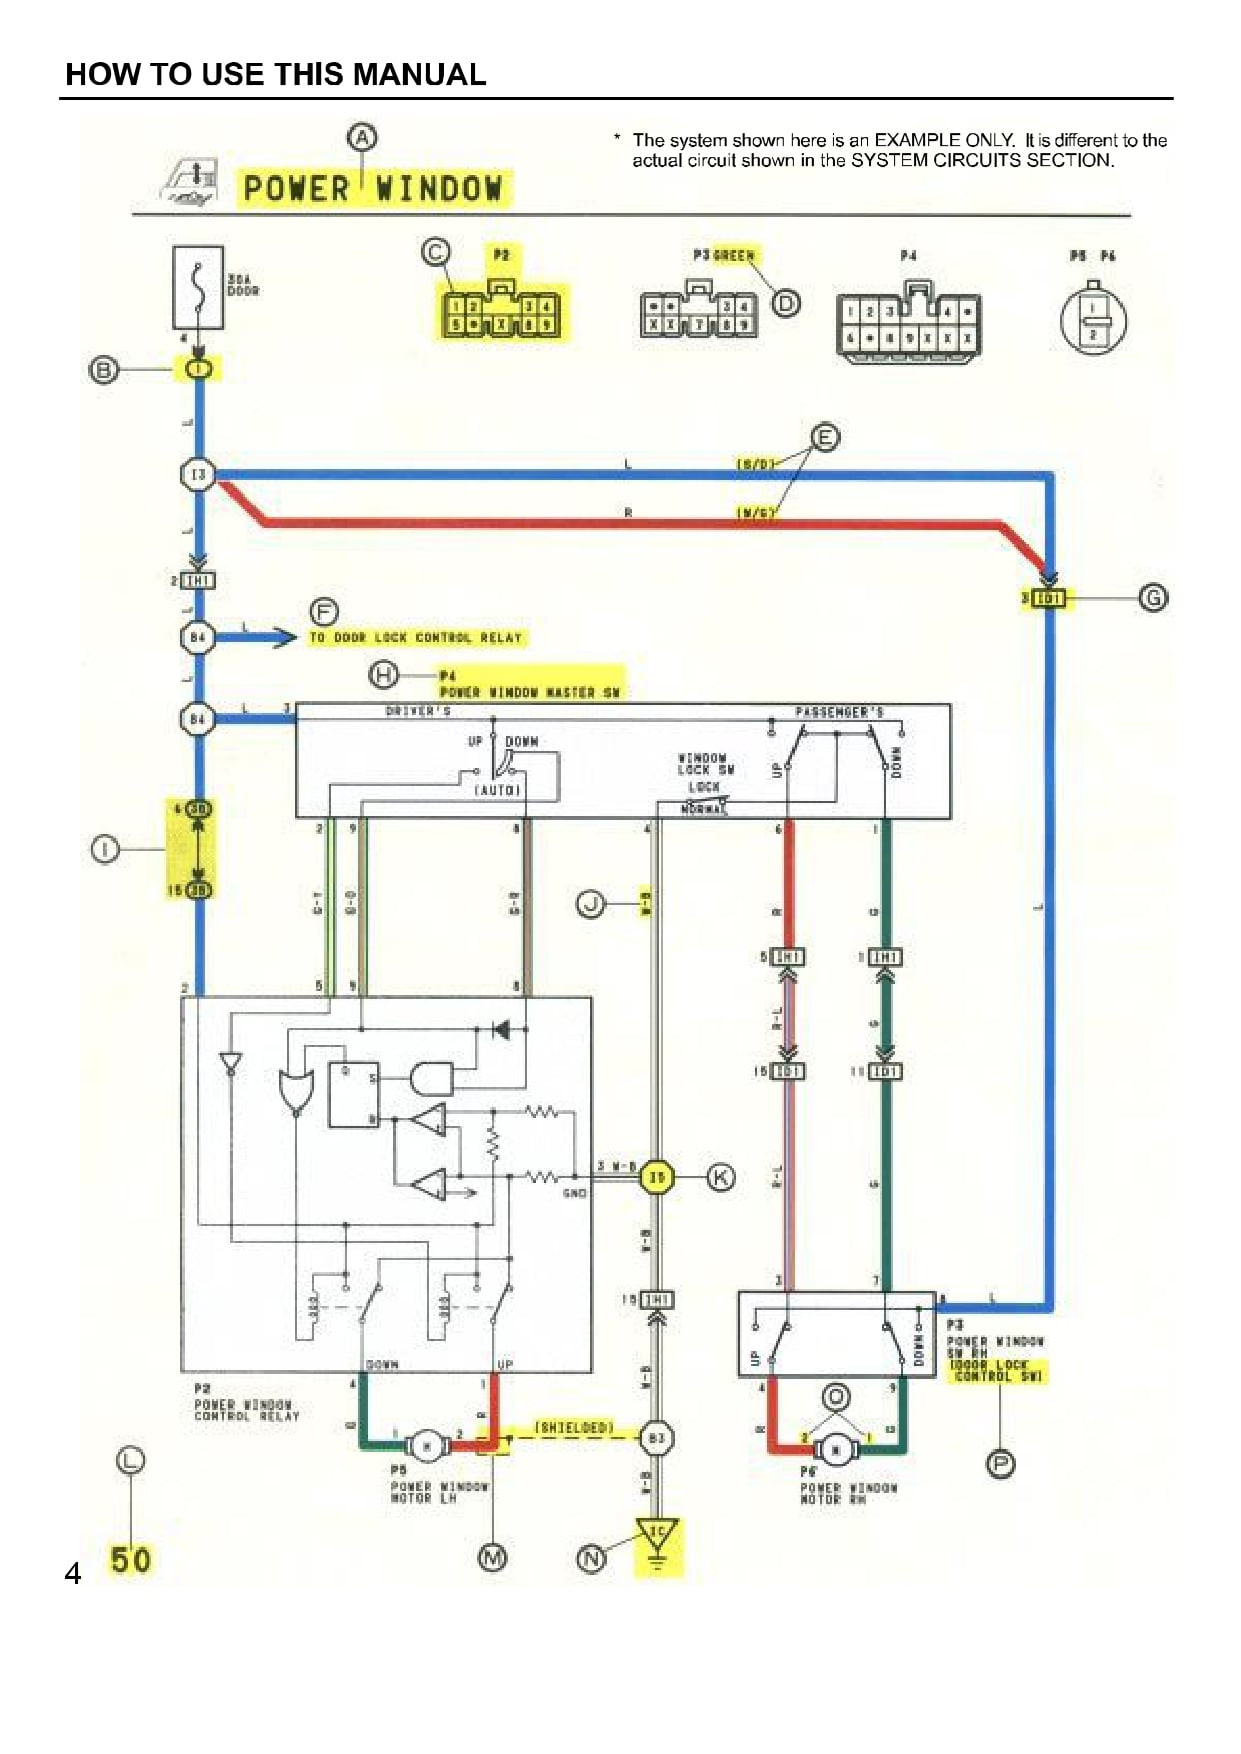 2001 toyota Camry Ignition Spark Plug Diagram Diagram] 93 Camry Wiring Diagram Full Version Hd Quality Wiring … Of 2001 toyota Camry Ignition Spark Plug Diagram